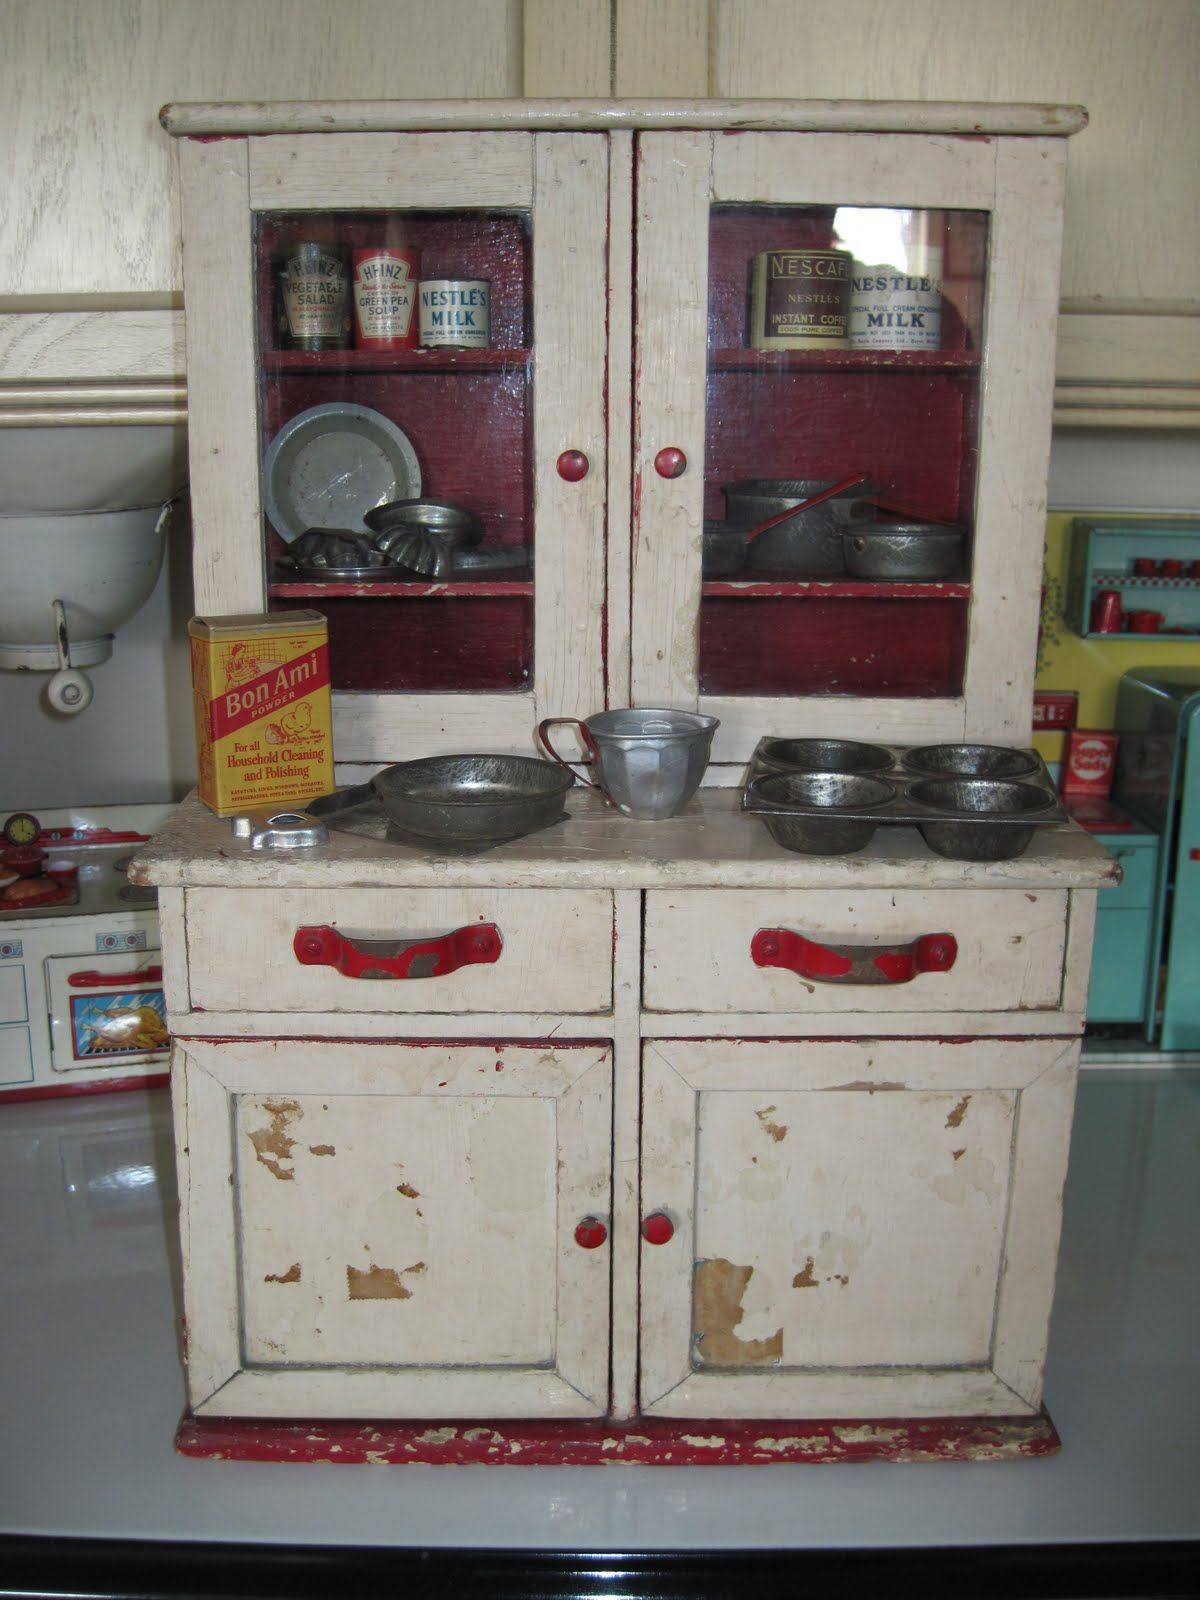 Vintage Wood Kitchen Cabinets Antique Kitchen Cabinets With Flour Bin Antiqued Kitchen Cabinets Pictures Antique Kitchen Cabinets Toy Kitchen Antique Kitchen